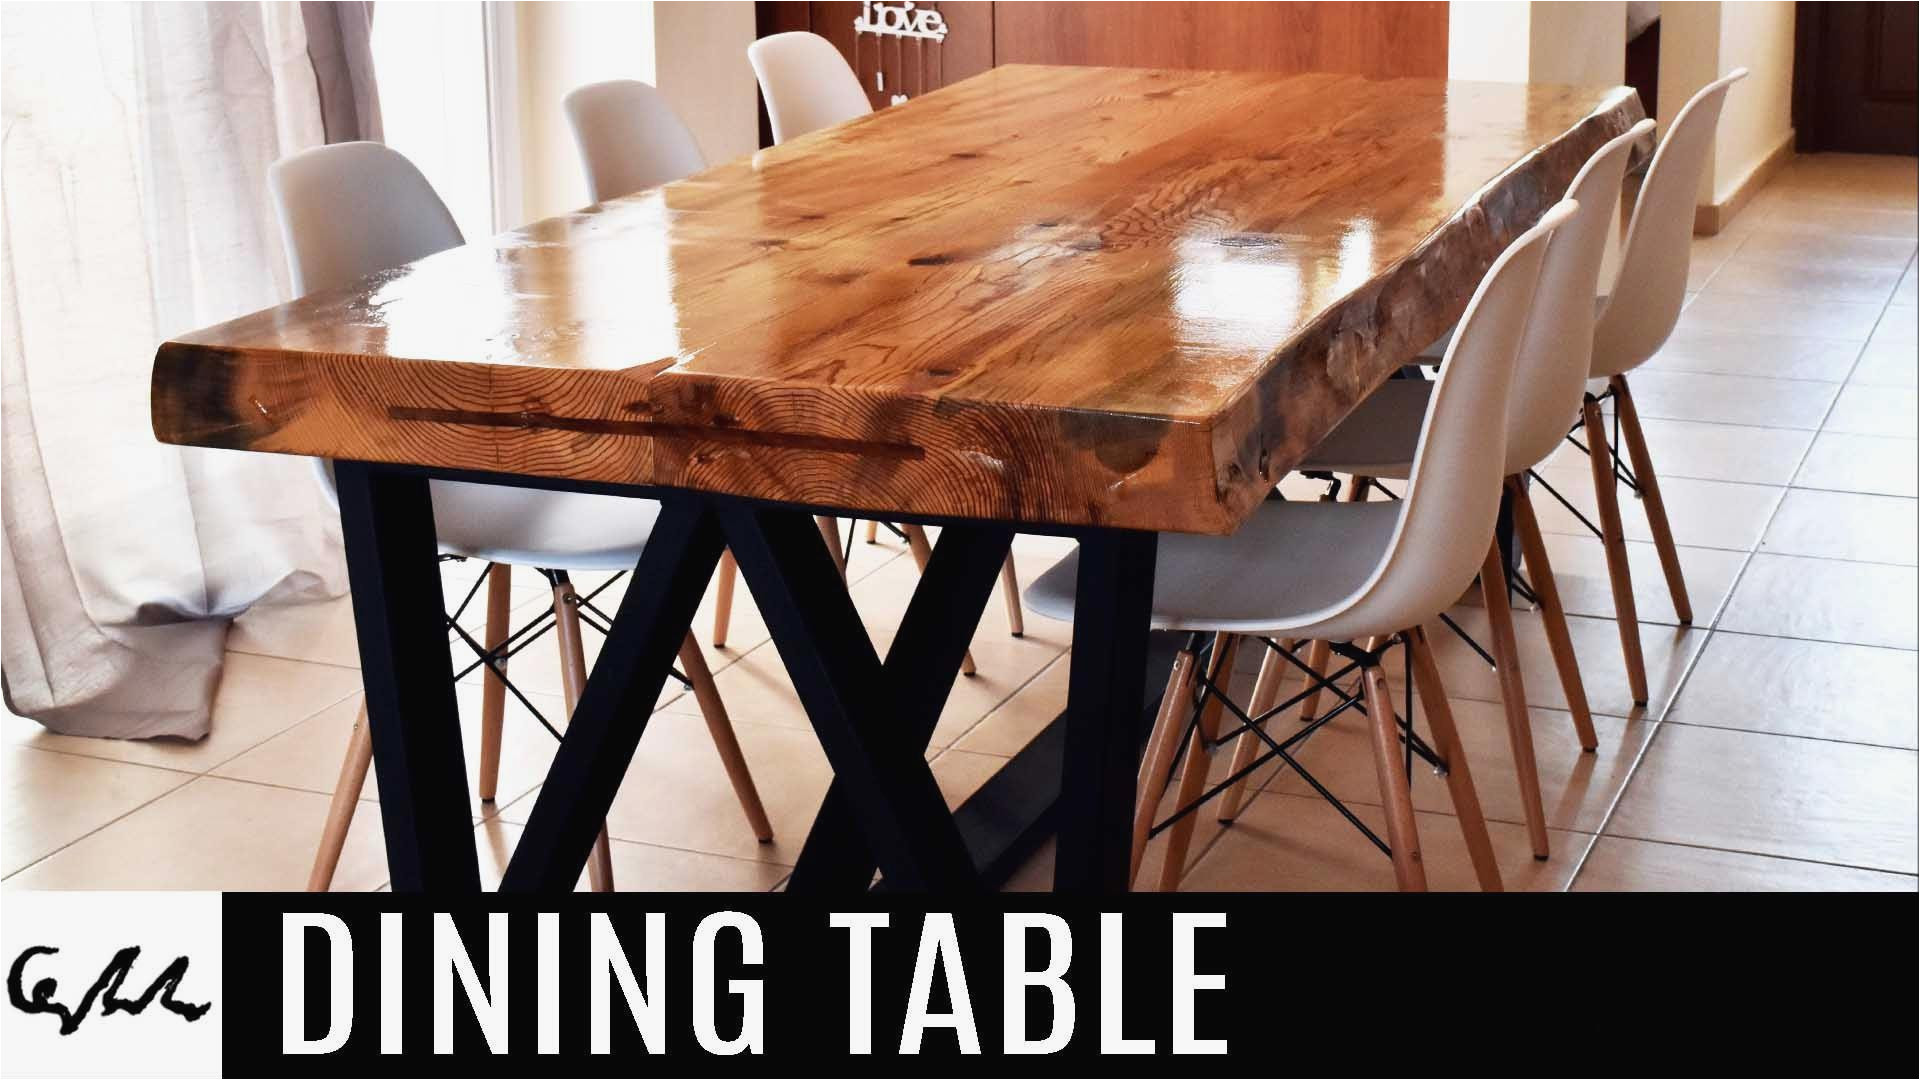 appealing dining table kits as diy dining table plans unique diy outdoor furniture plans new wicker